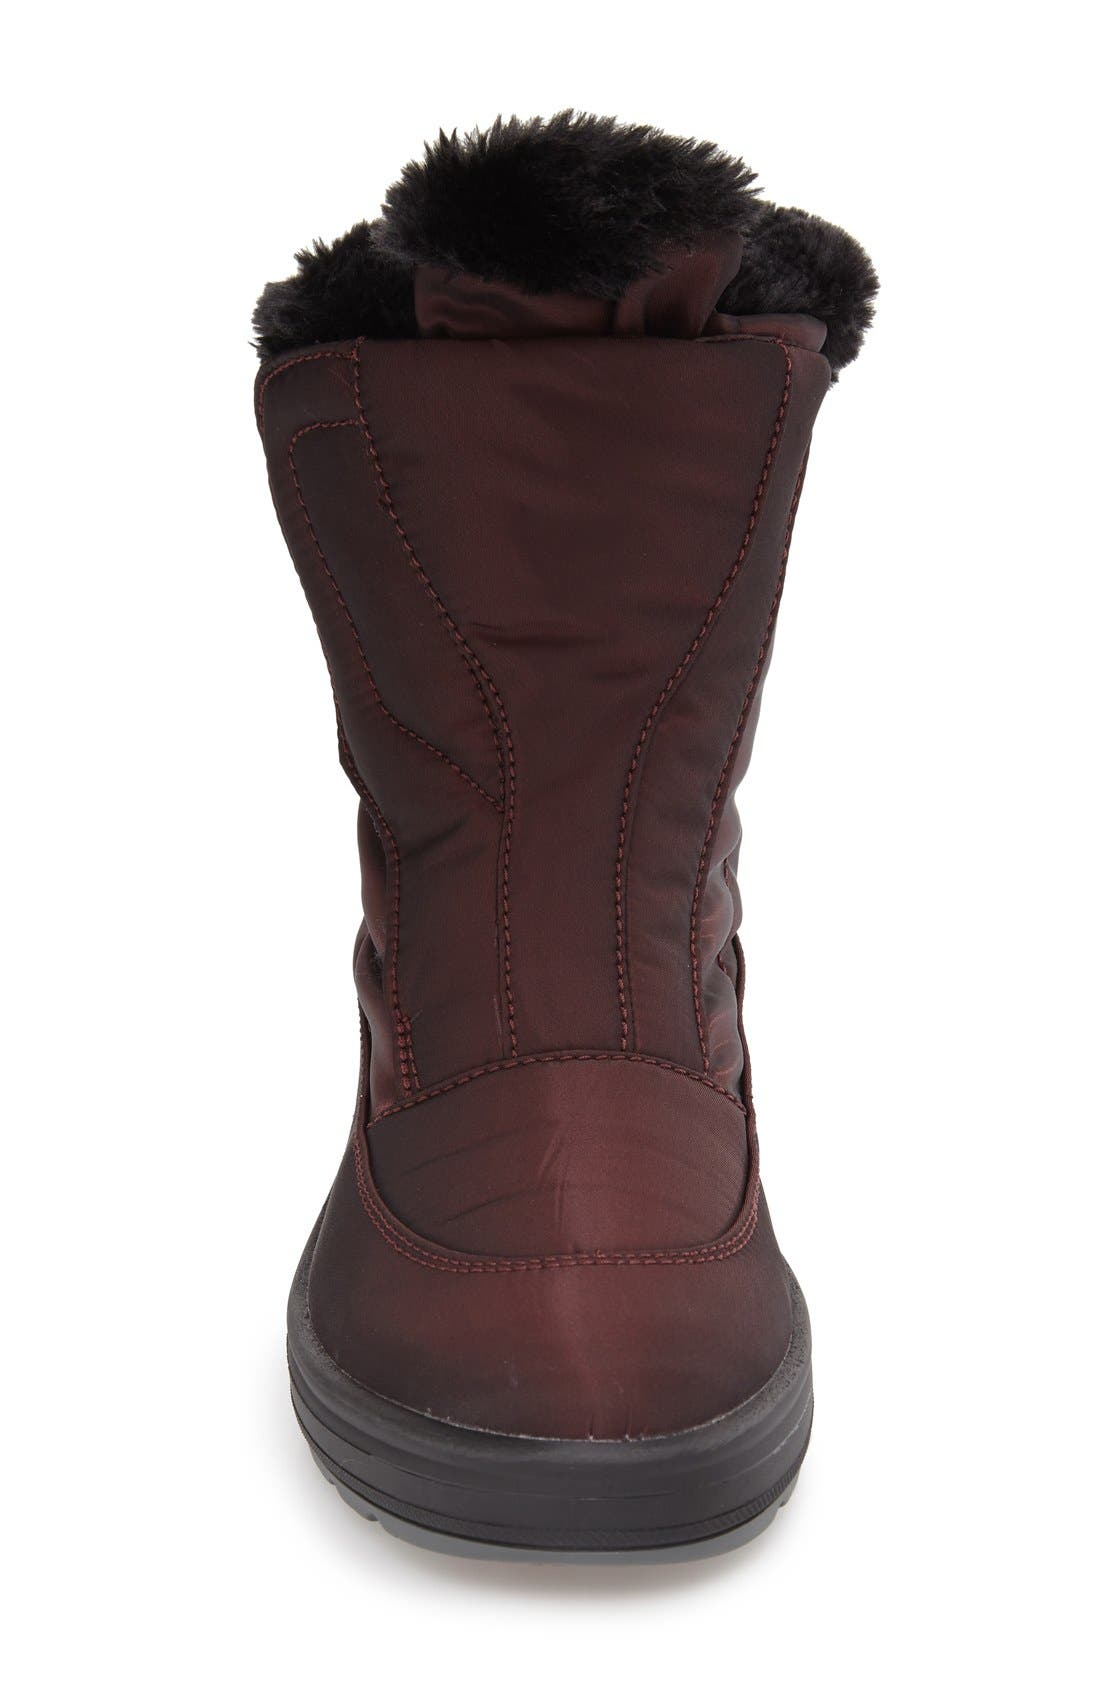 'Kimmi' Snow Boot,                             Alternate thumbnail 3, color,                             Burgundy Fabric